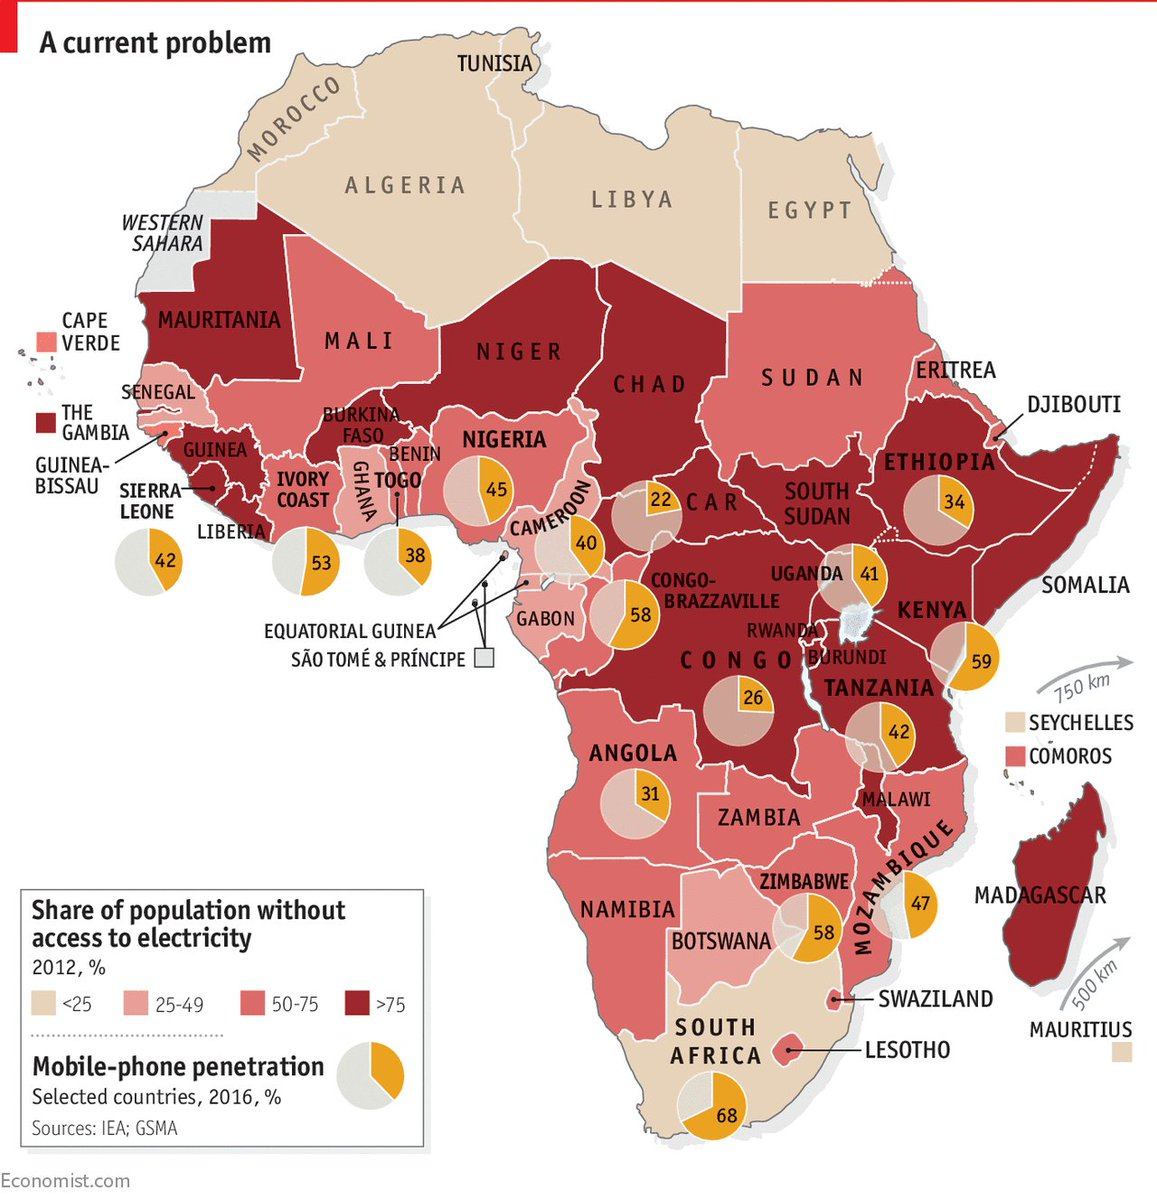 In much of sub-Saharan Africa, mobile phones are more common than access to electricity   https://t.co/C4U1D3e5nd